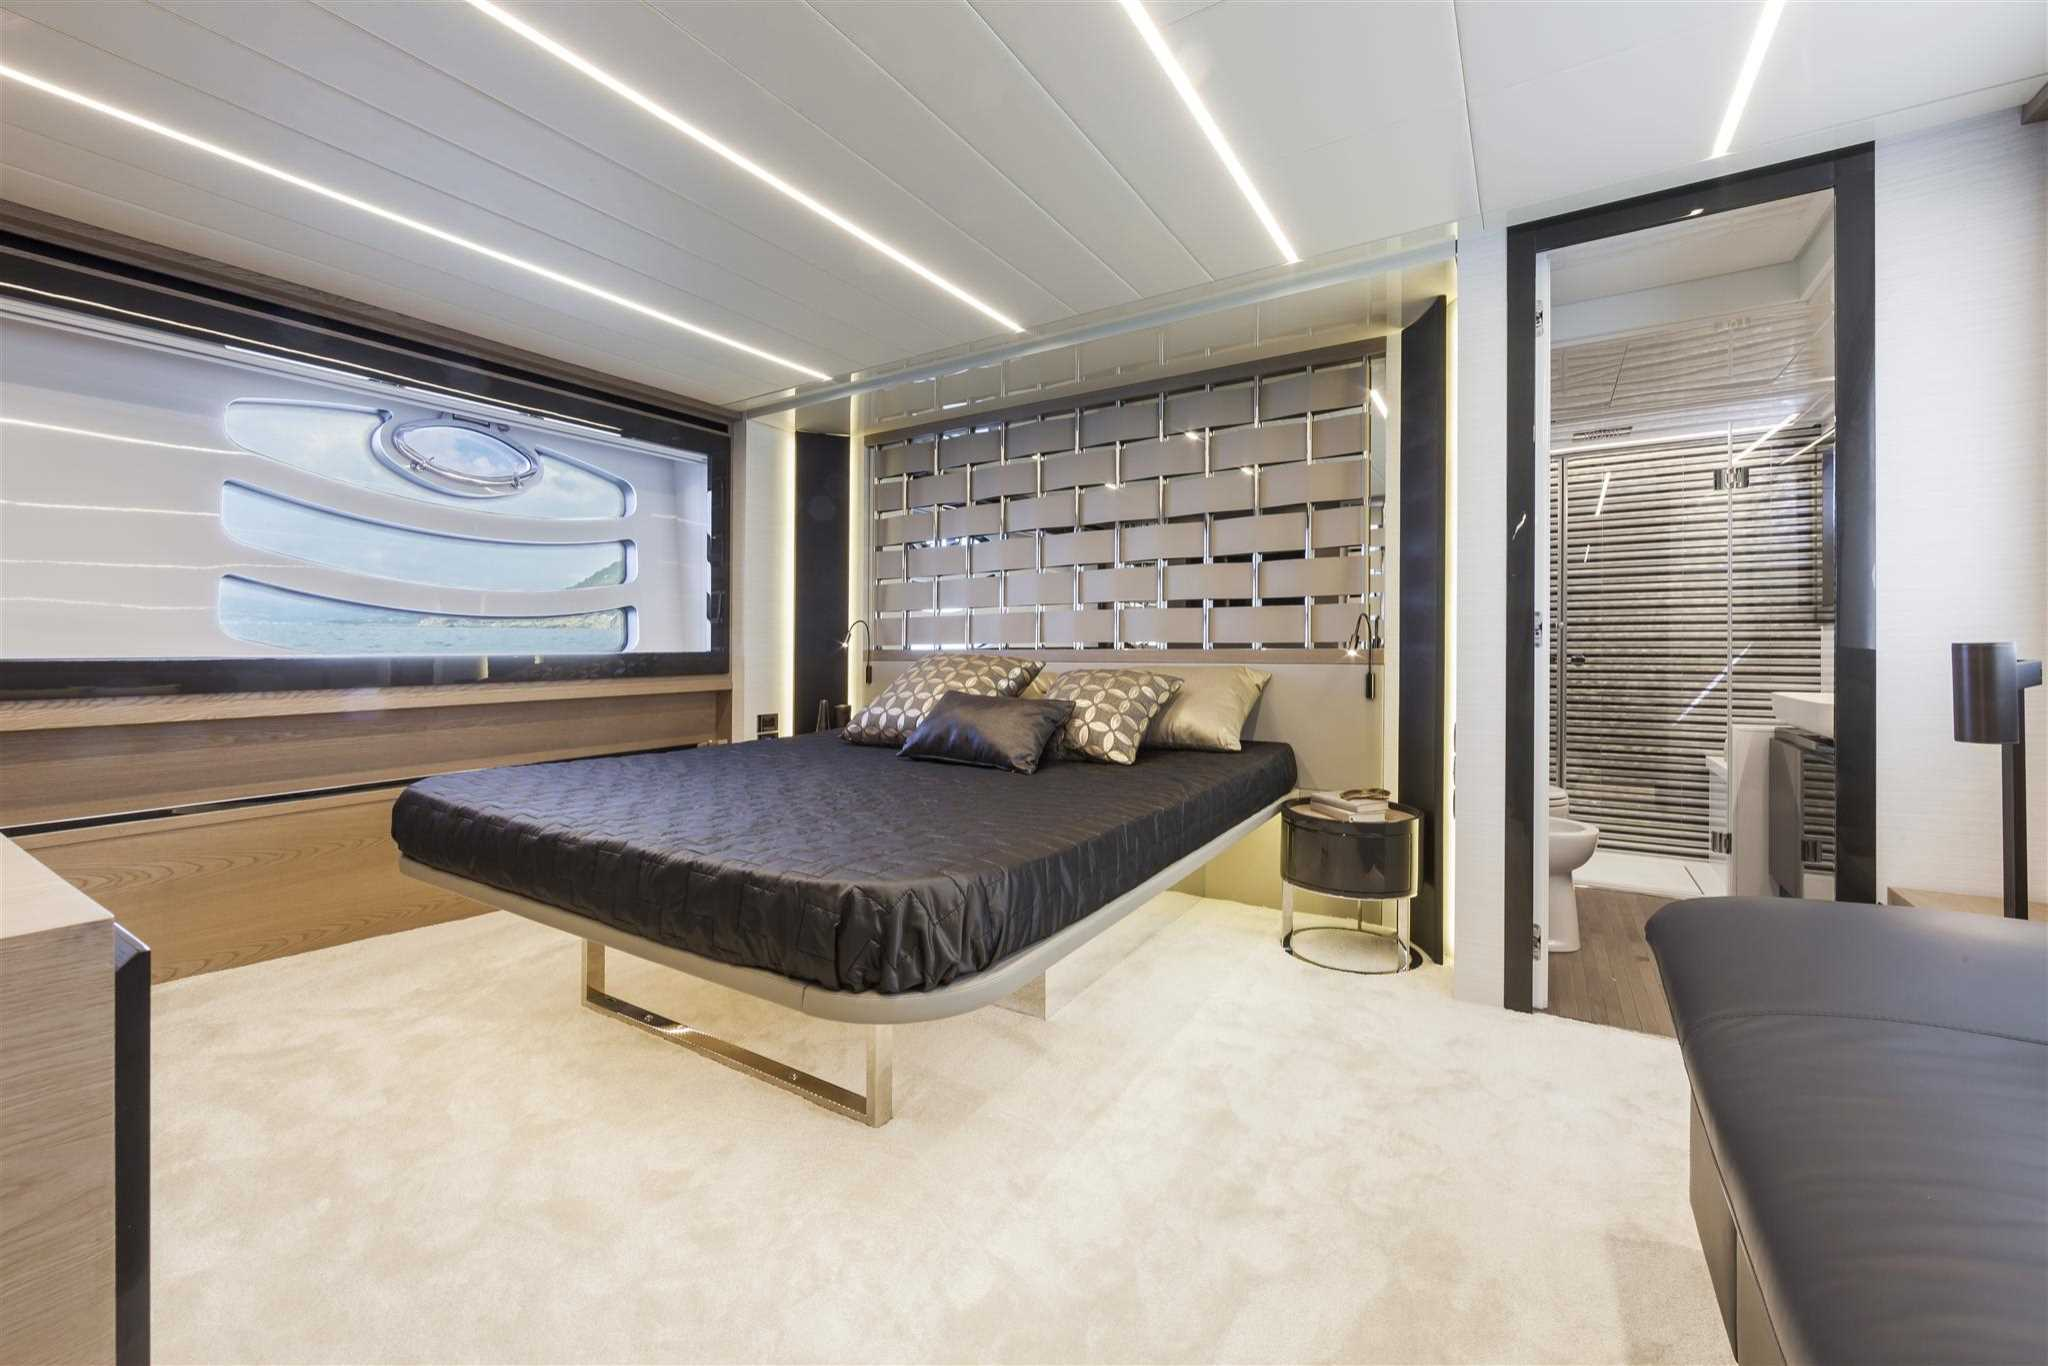 2018 Pershing 70 Luxury Yacht Master Bedroom